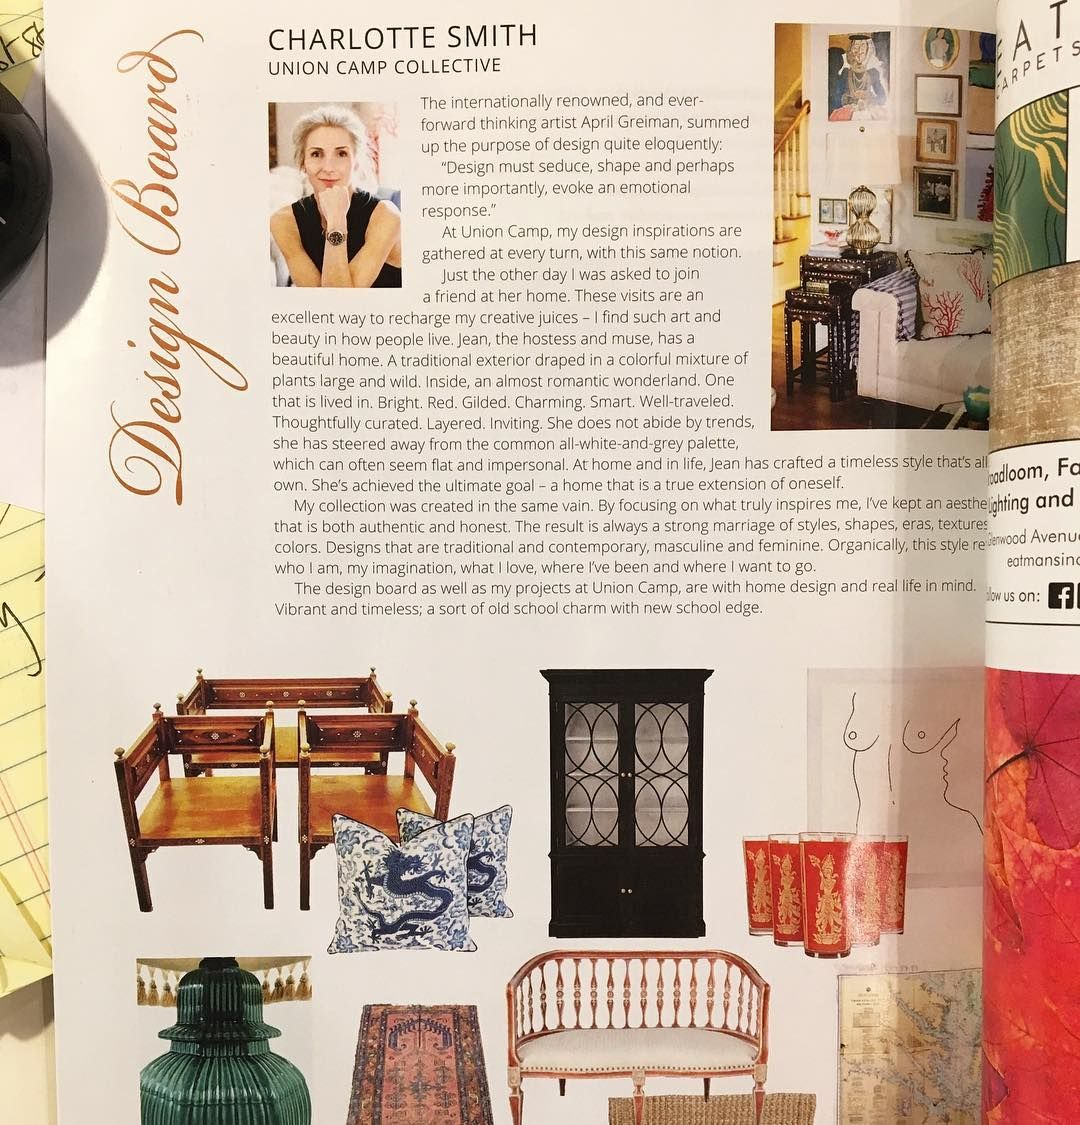 Hey Ma! I'm FAMOUS. well. Maybe not rrreally. but. But. I'm havin this true #feelinmyself moment over here (yes still here). Home Design & Decor Mag. Your girl! Pg 46. HAY. HI!